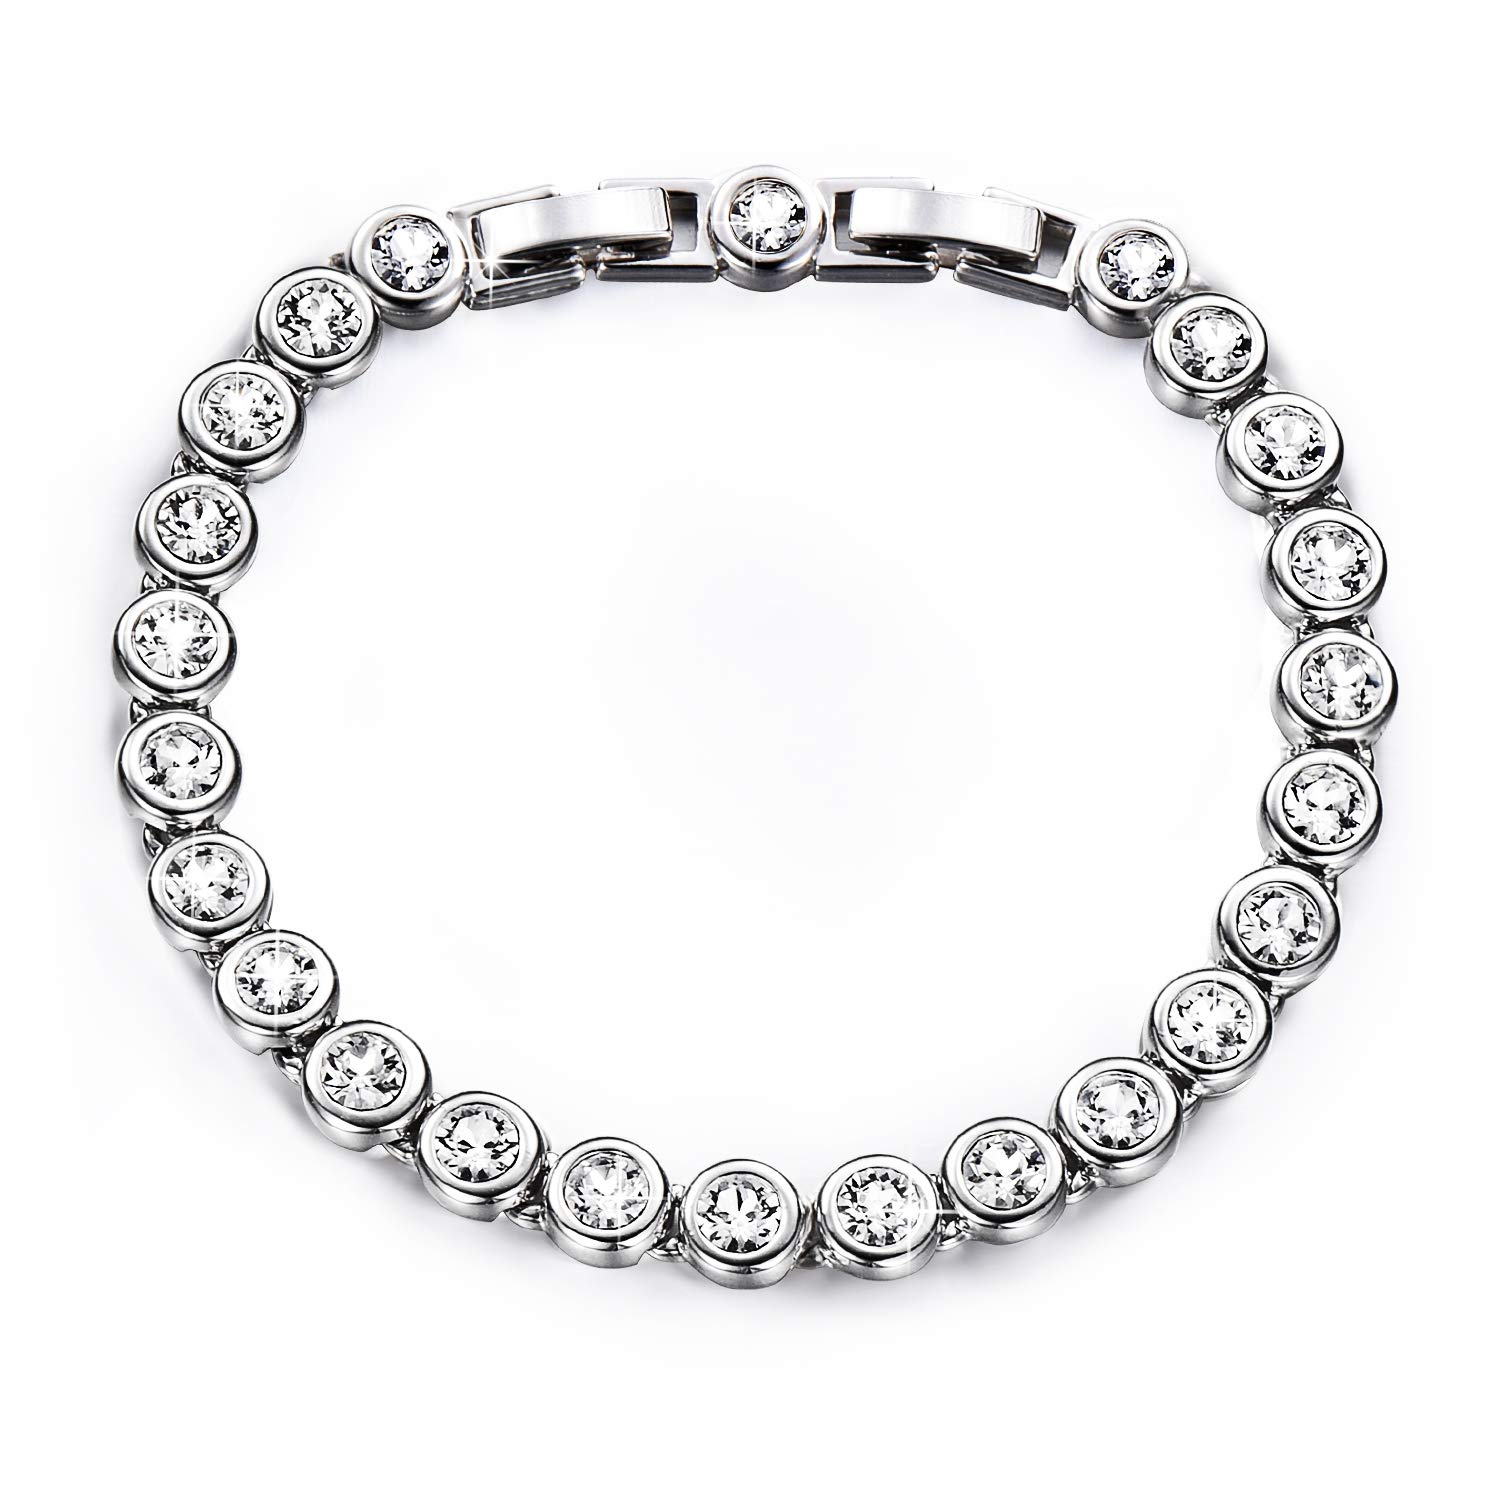 "Yalong Tennis Bracelet for Women Jewelry with Swarovski Crystal, Classic Sliver White Gold Plated Bracelet with Charm Birthstone for Girl, Friends, Wife & Mom, 6.5""+1""Extender 6.5""+1""Extender Yalong Jewelers Yalong-B-01"